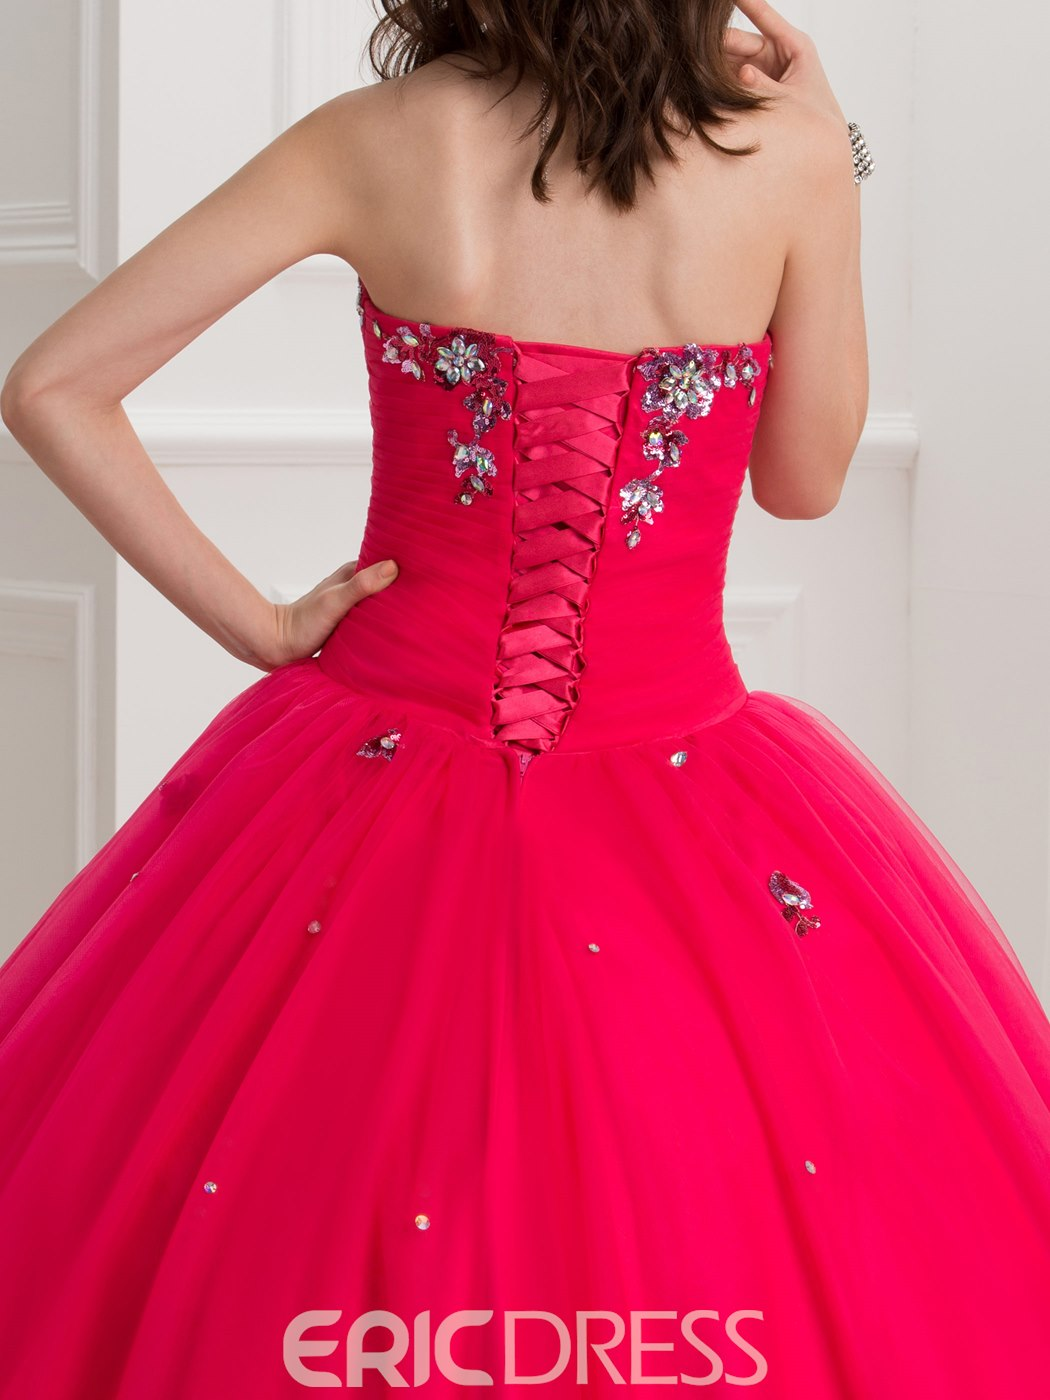 Ericdress Sweetheart Sequins Beading Ball Gown Quinceanera Dress